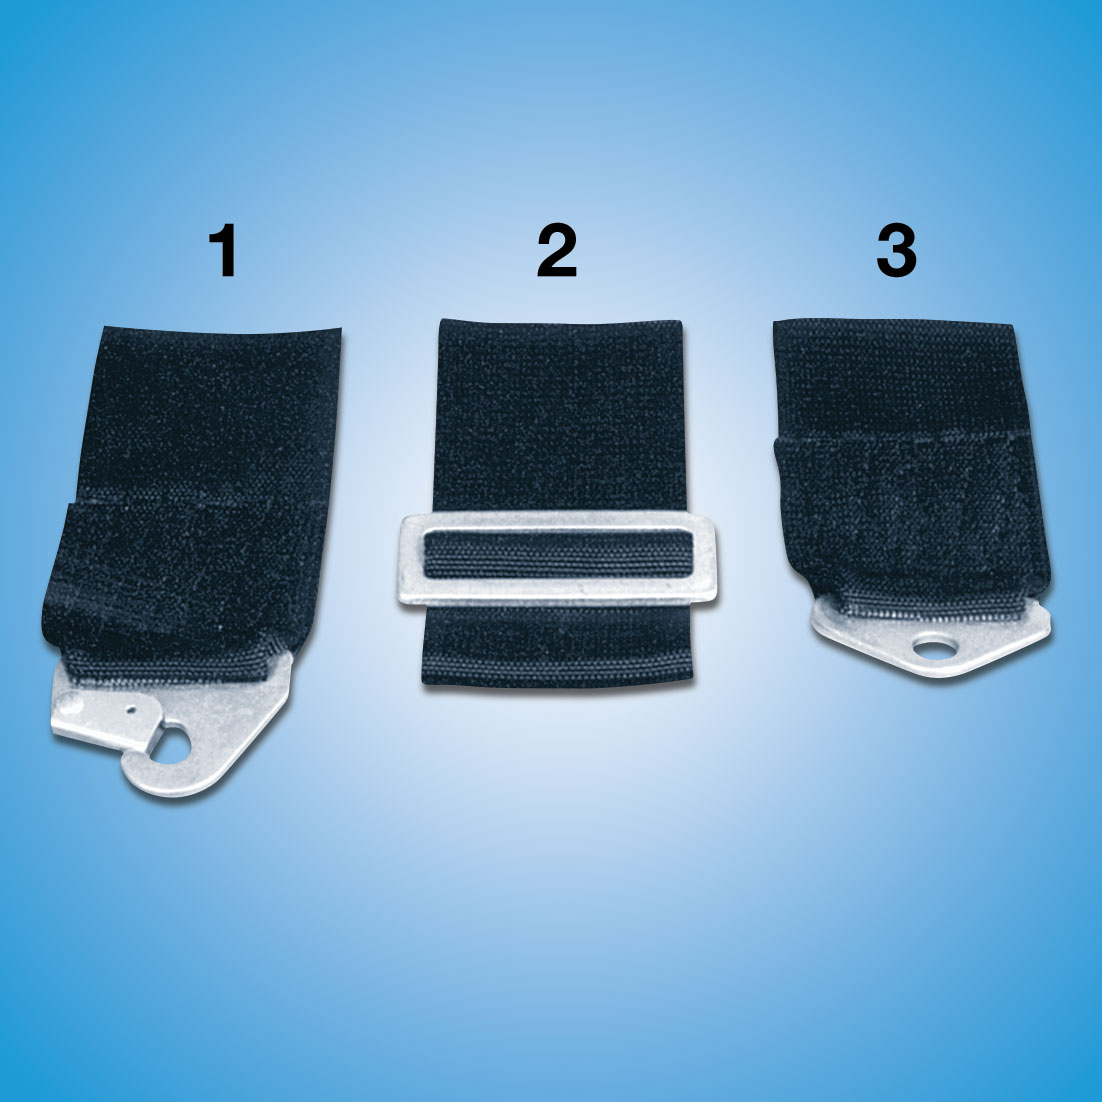 Seat Belt End Fittings   End fittings for all seat belt systems. Various types of mounting available at no additional cost.  1. Snap-In (needs eyebolt attachment) 2. Wrap Around -Standard 3. Bolt-In